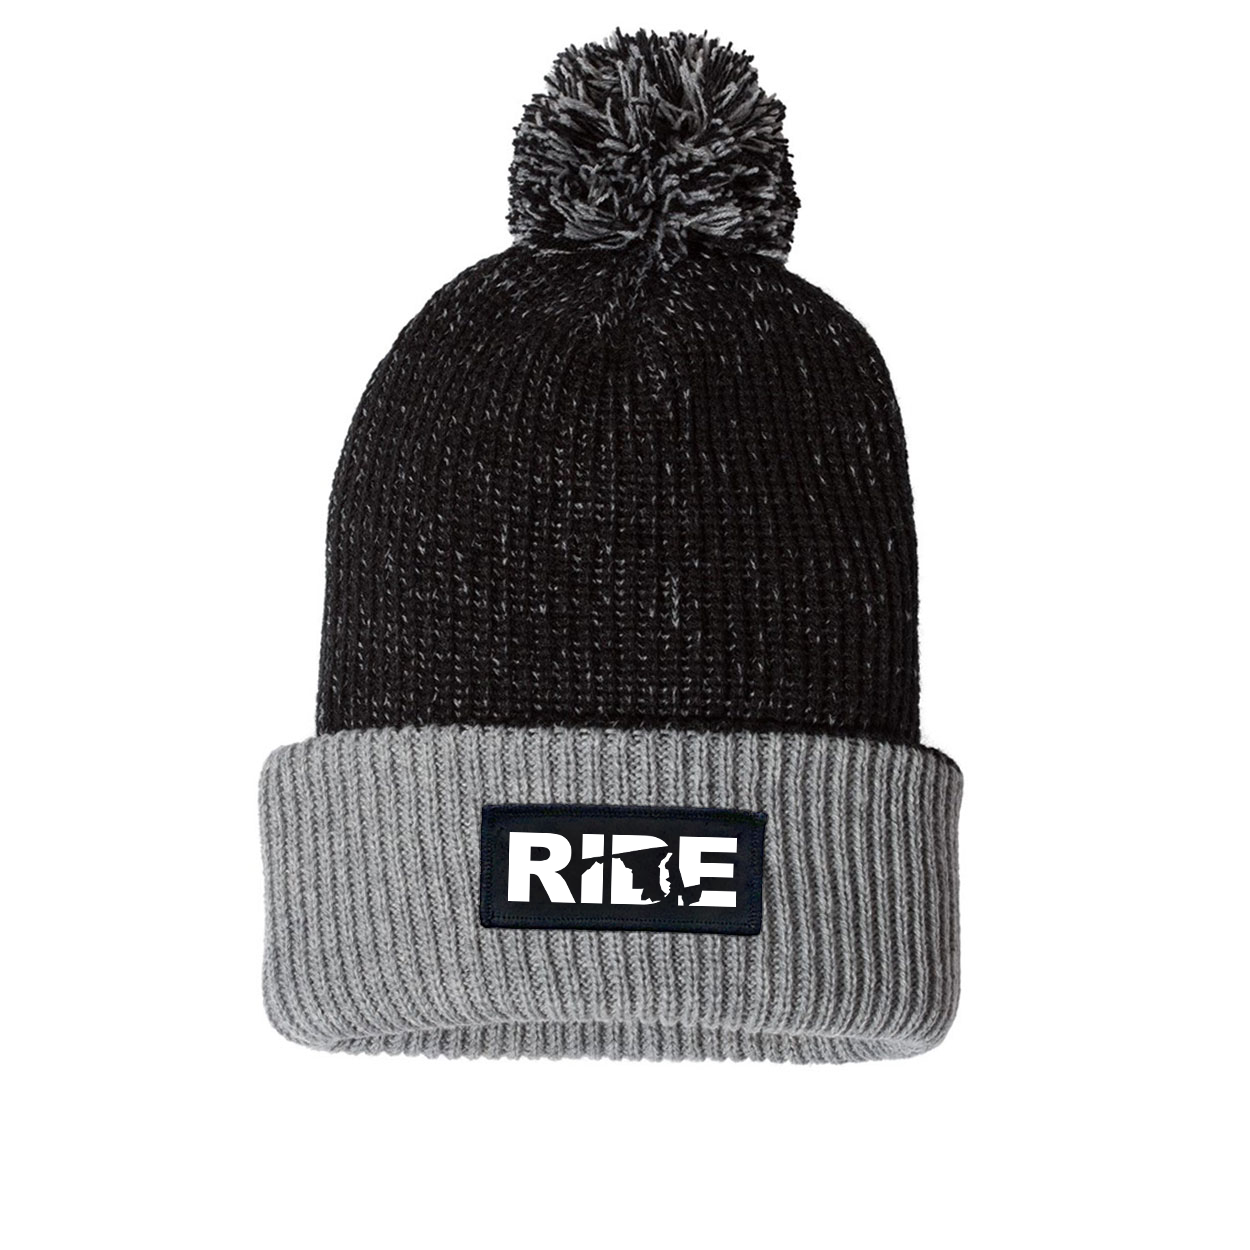 Ride Maryland Night Out Woven Patch Roll Up Pom Knit Beanie Black/Gray (White Logo)